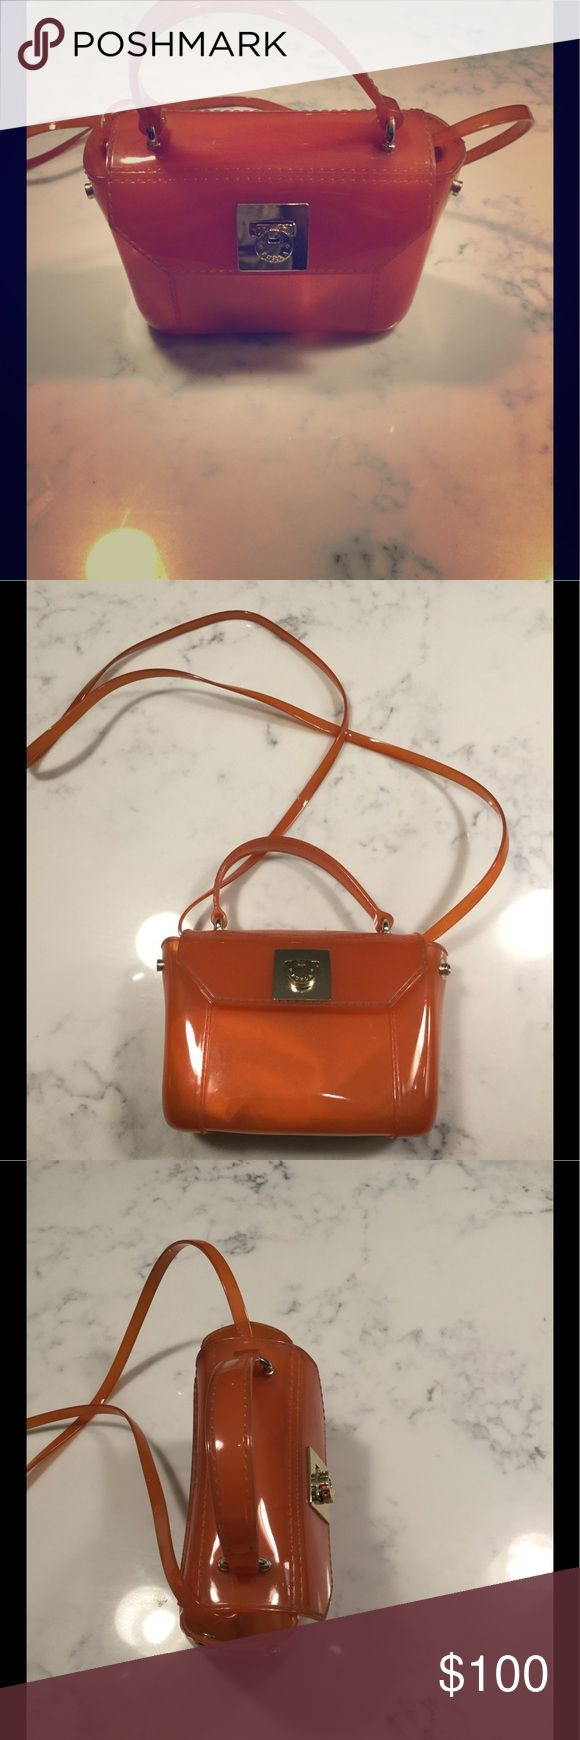 Furla Crossbody Furla Crossbody with removable straps. Orange PVC rarely used. Furla Bags Crossbody Bags